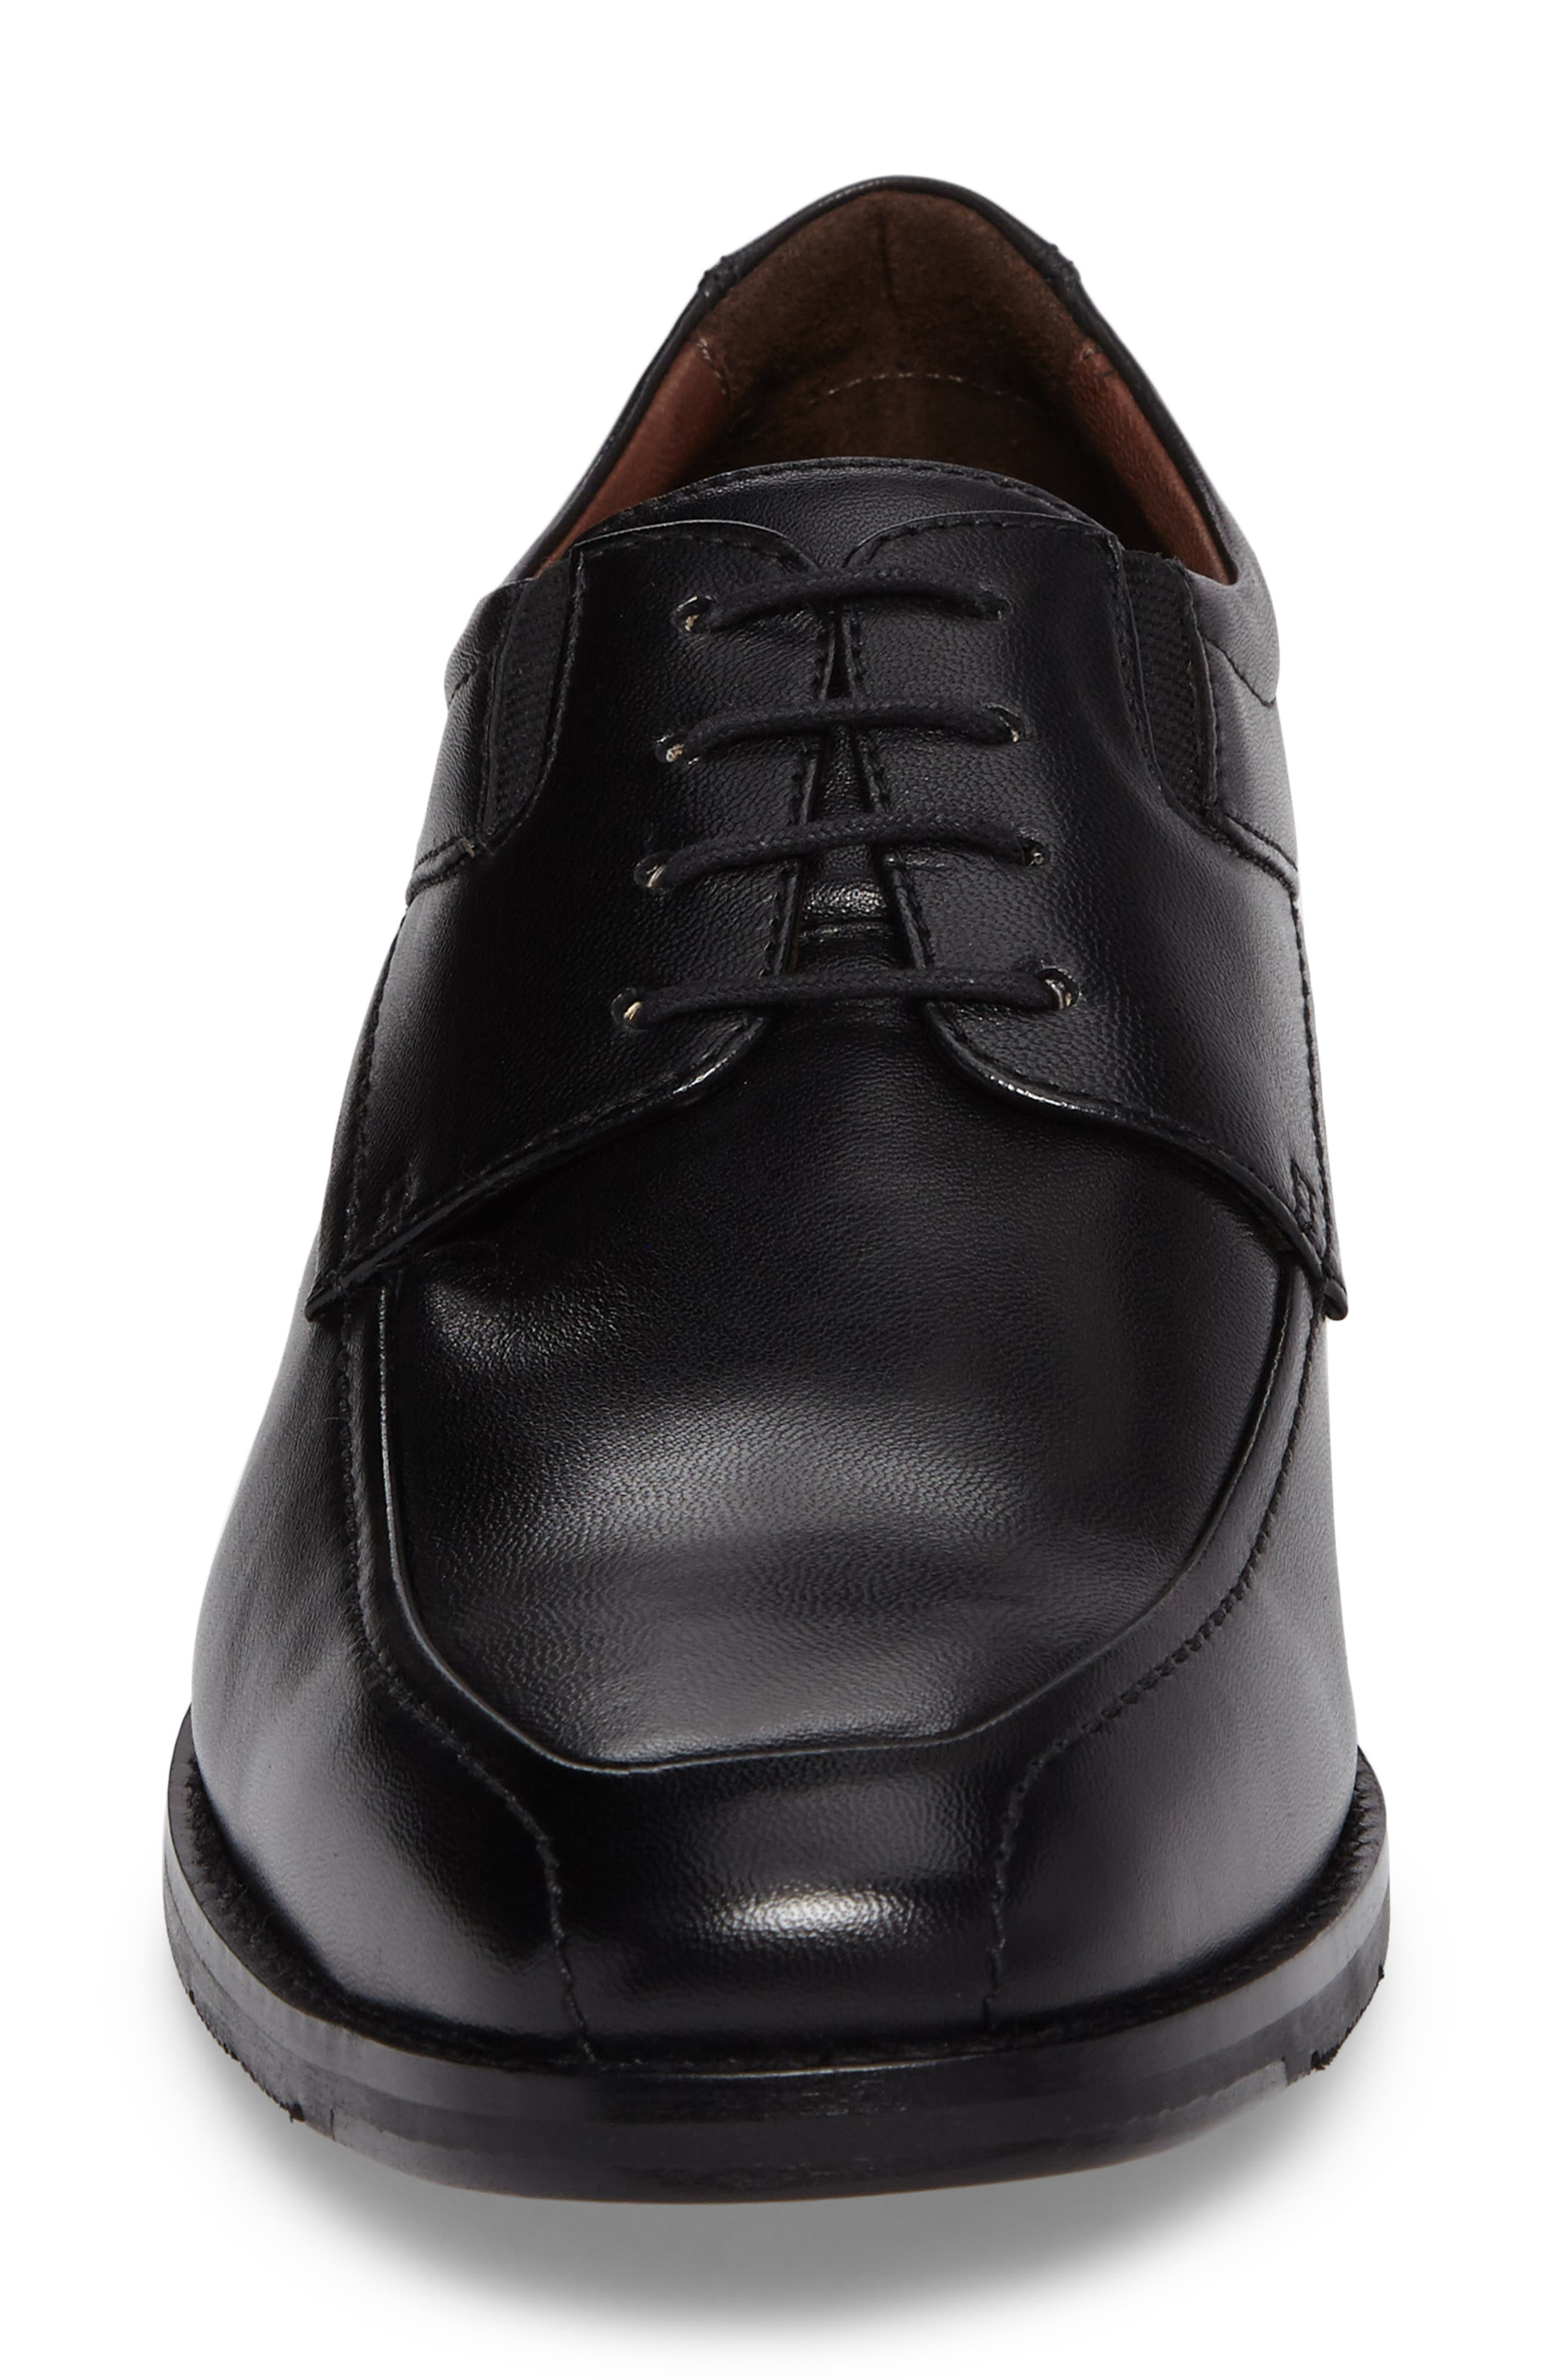 JOHNSTON & MURPHY, Apron Toe Derby, Alternate thumbnail 4, color, BLACK